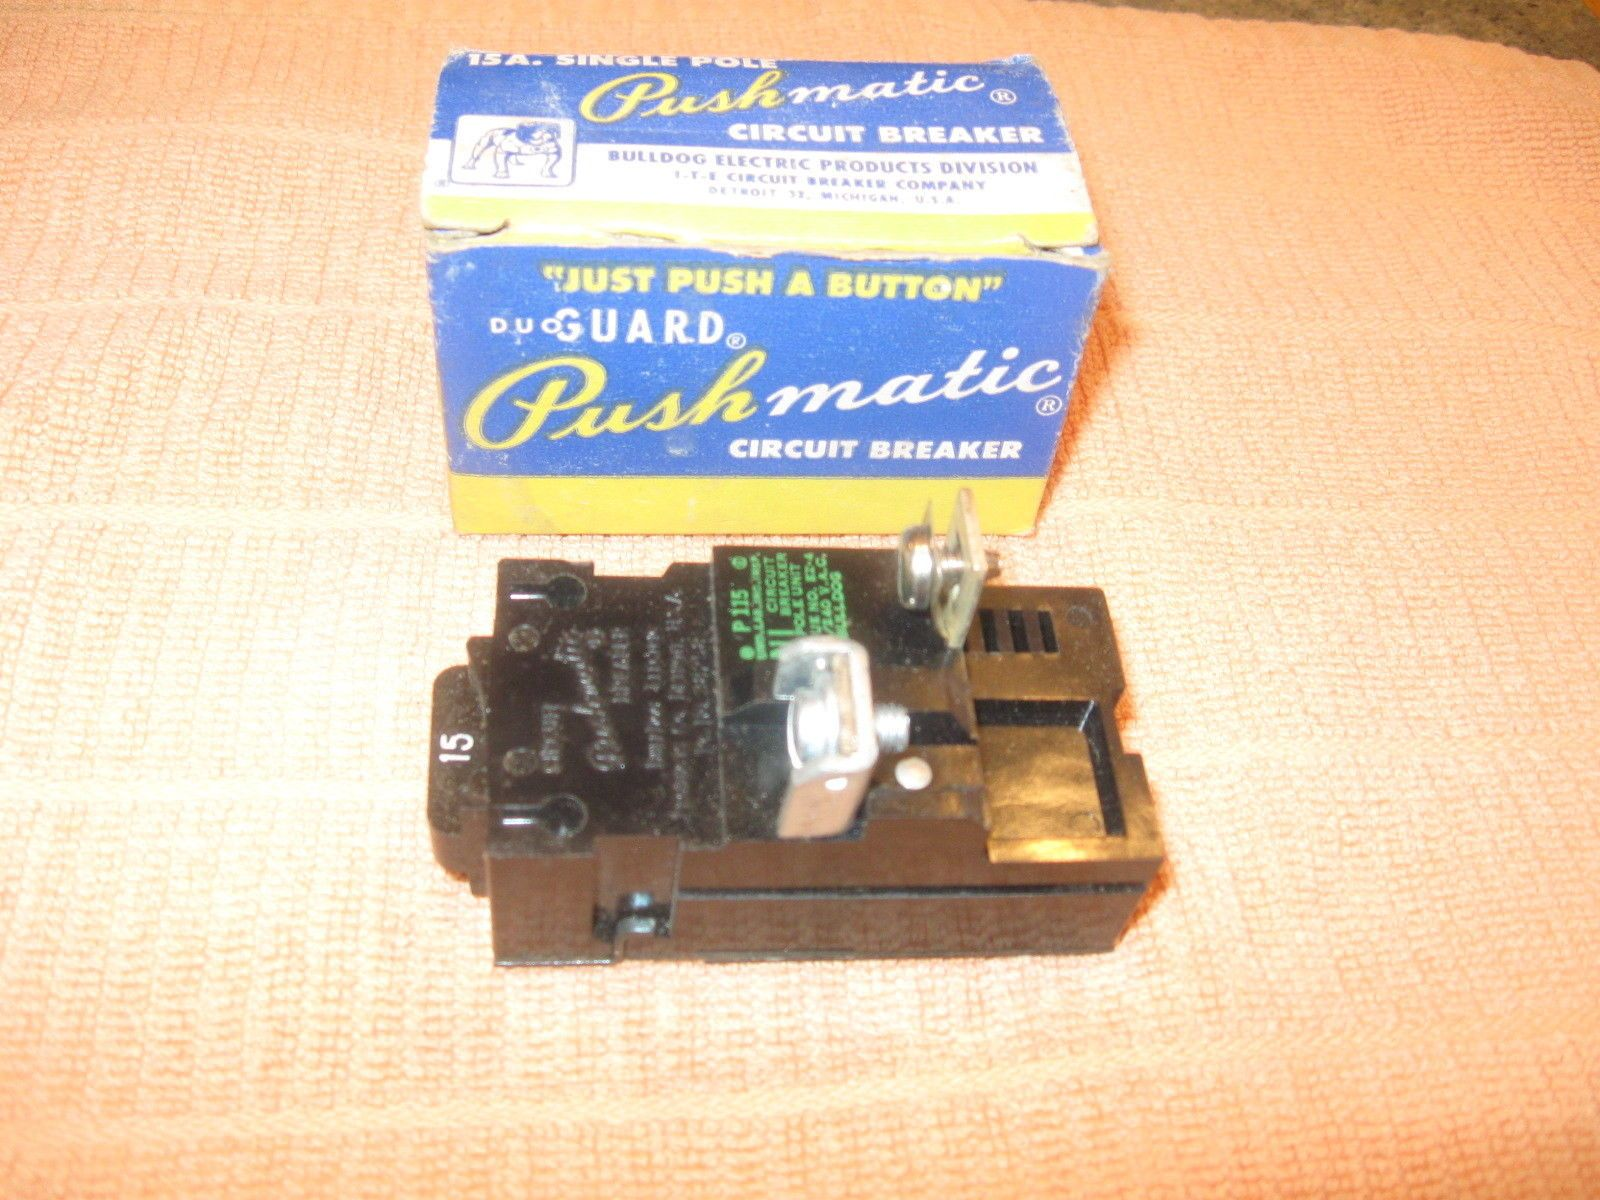 medium resolution of circuit breakers and fuse boxes 20596 pushmatic p115 bulldog 15 amp ite gould single pole